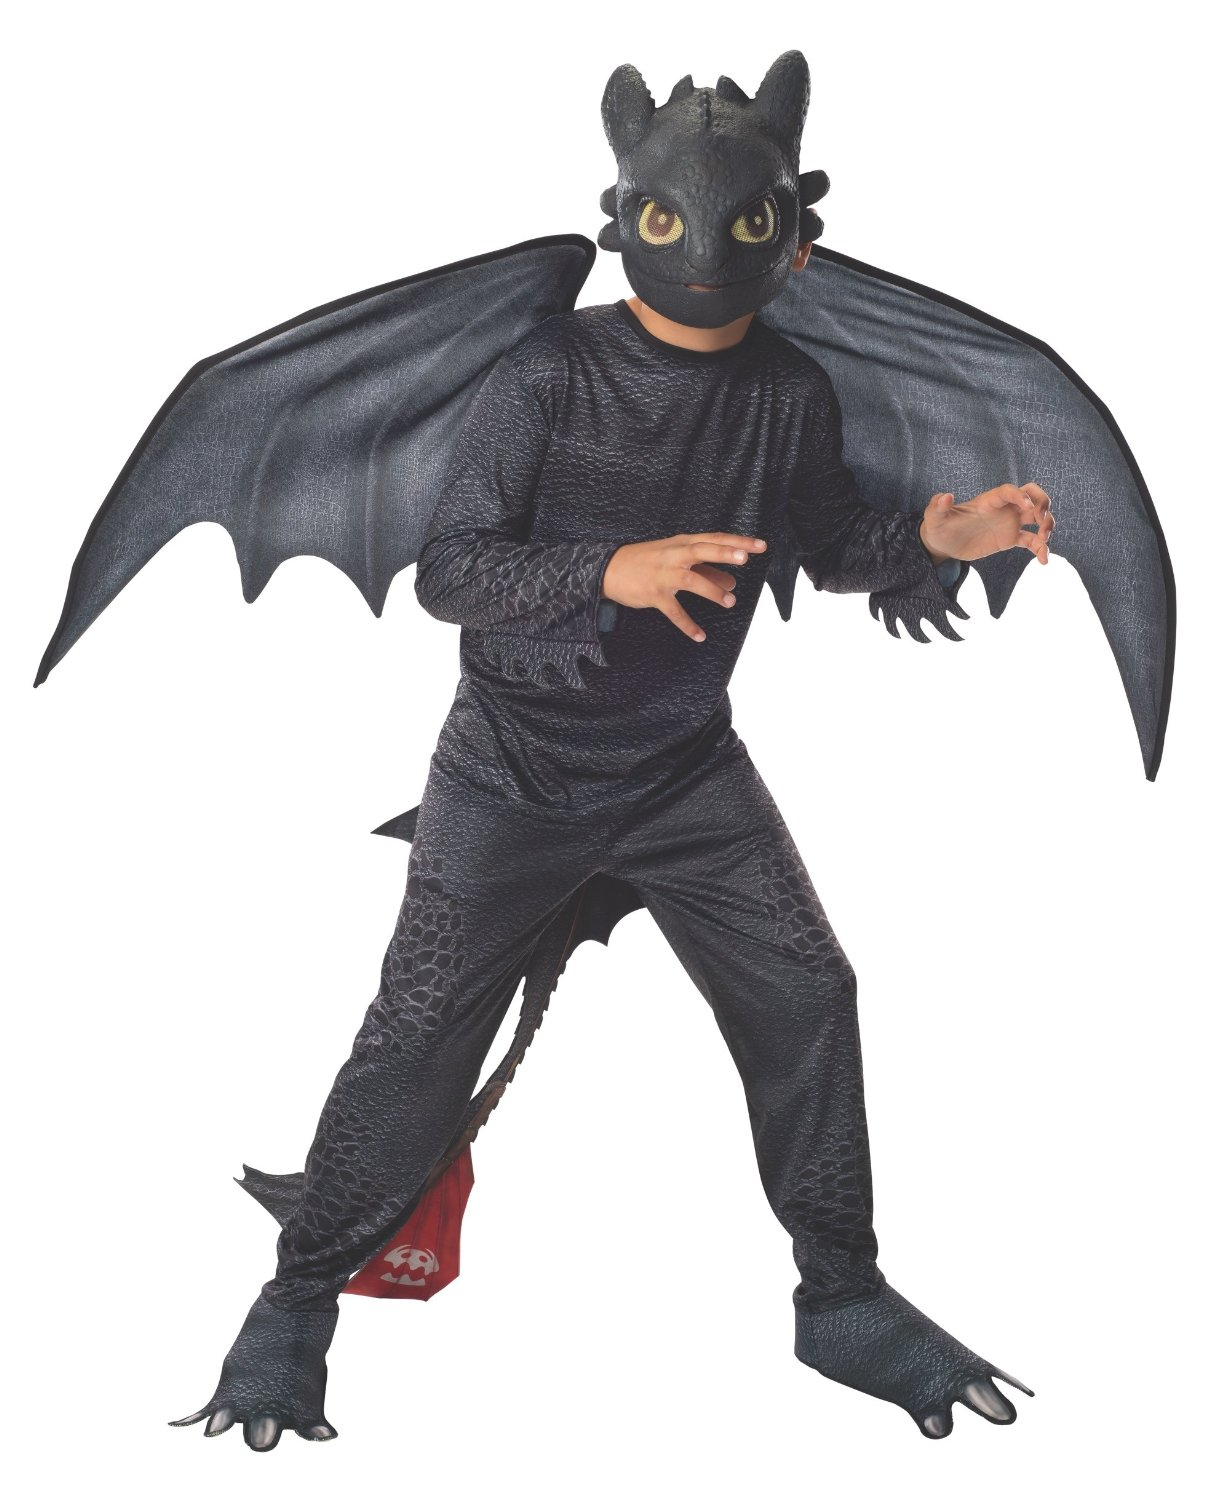 Toothless night fury costume 610103